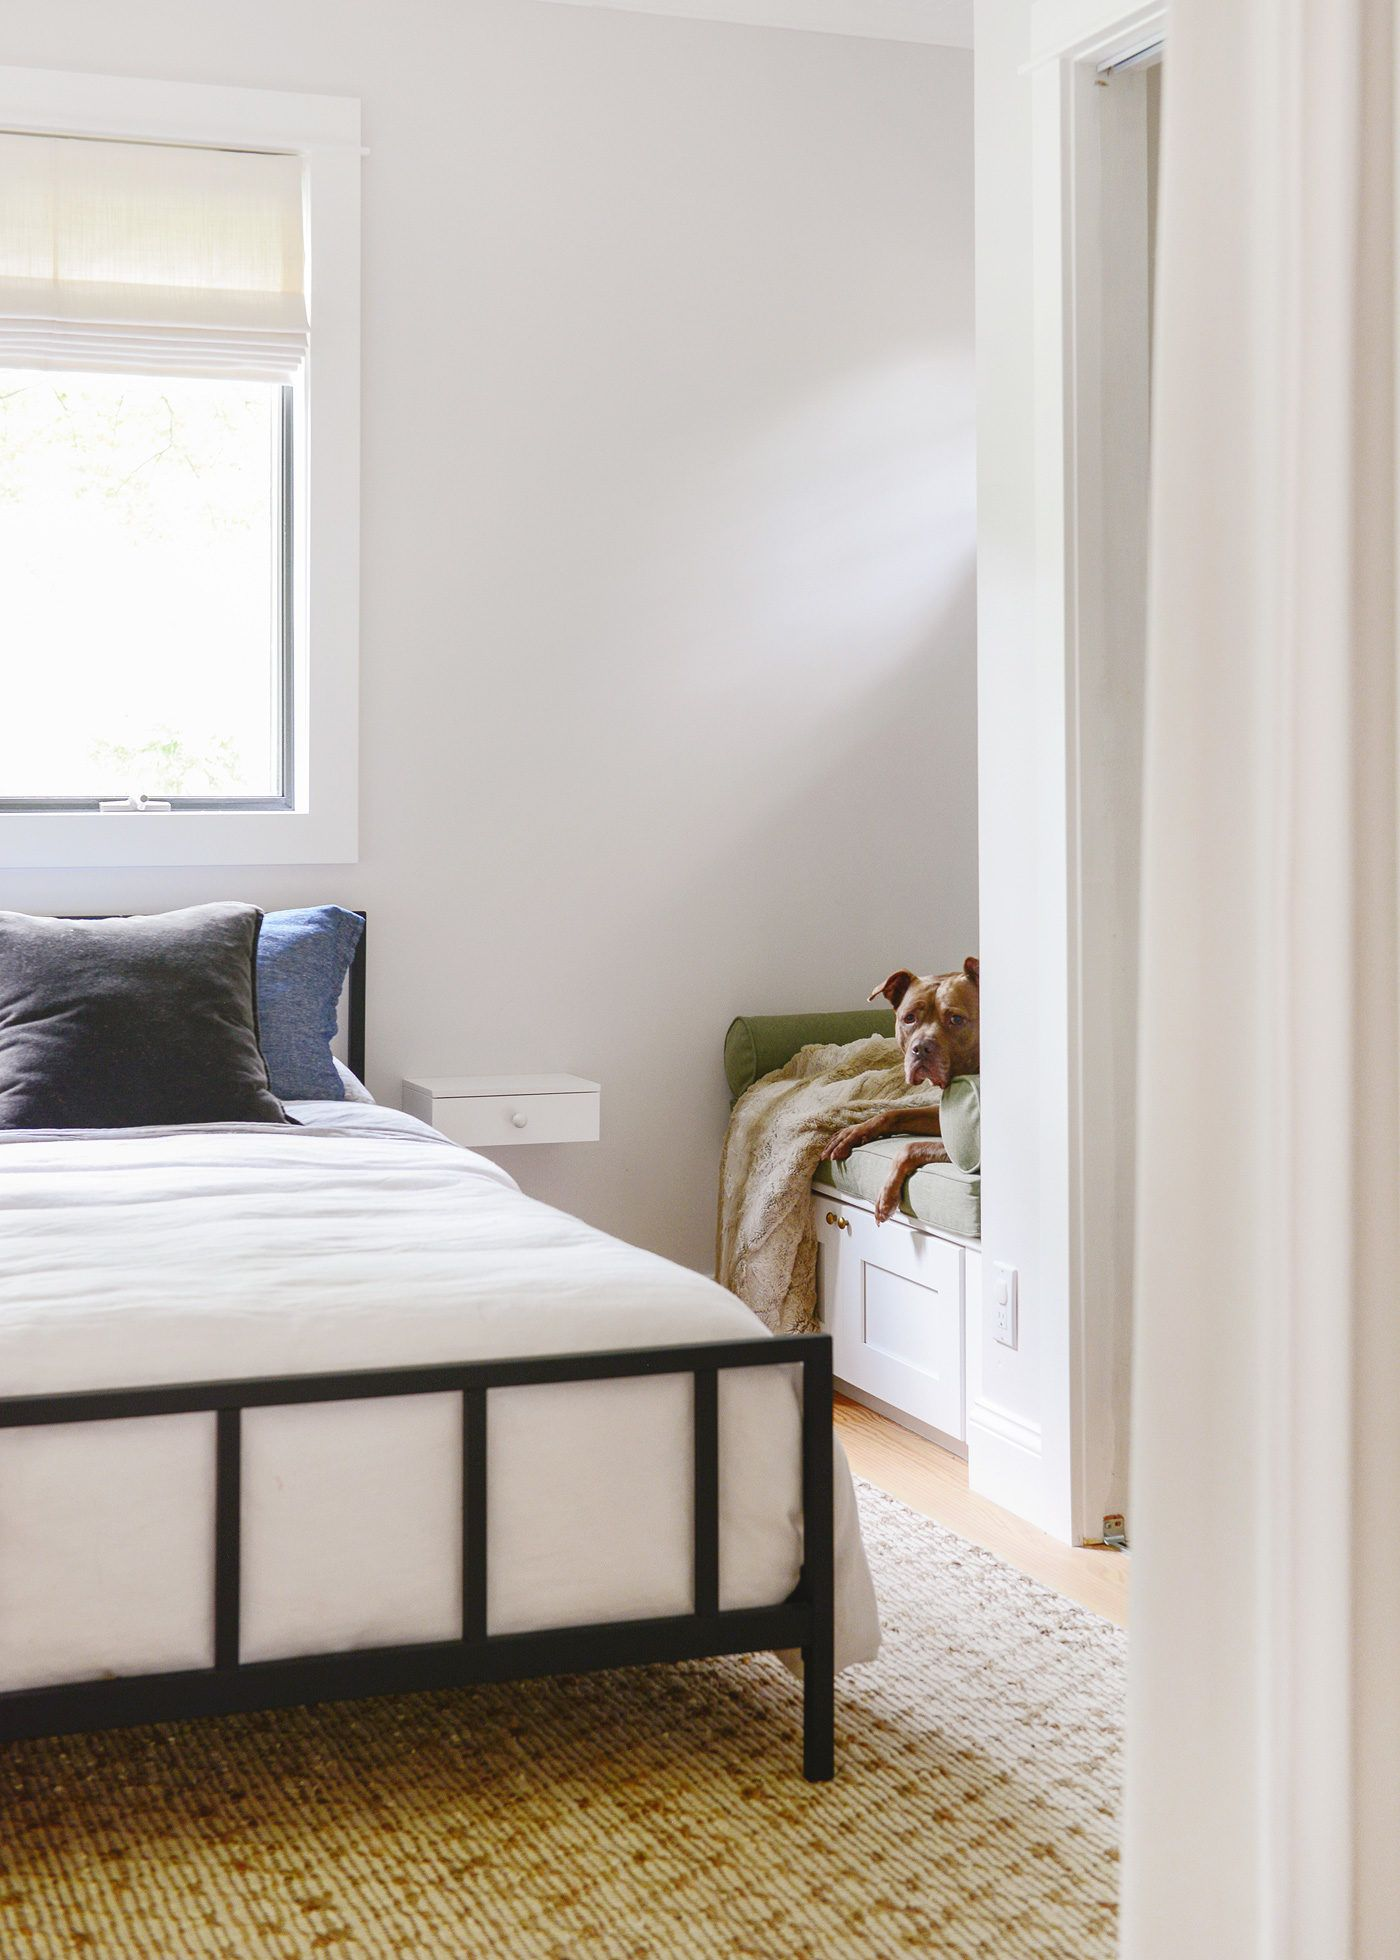 Magnificent How We Made A Dog Bed With Storage For The Love Of Diy Uwap Interior Chair Design Uwaporg